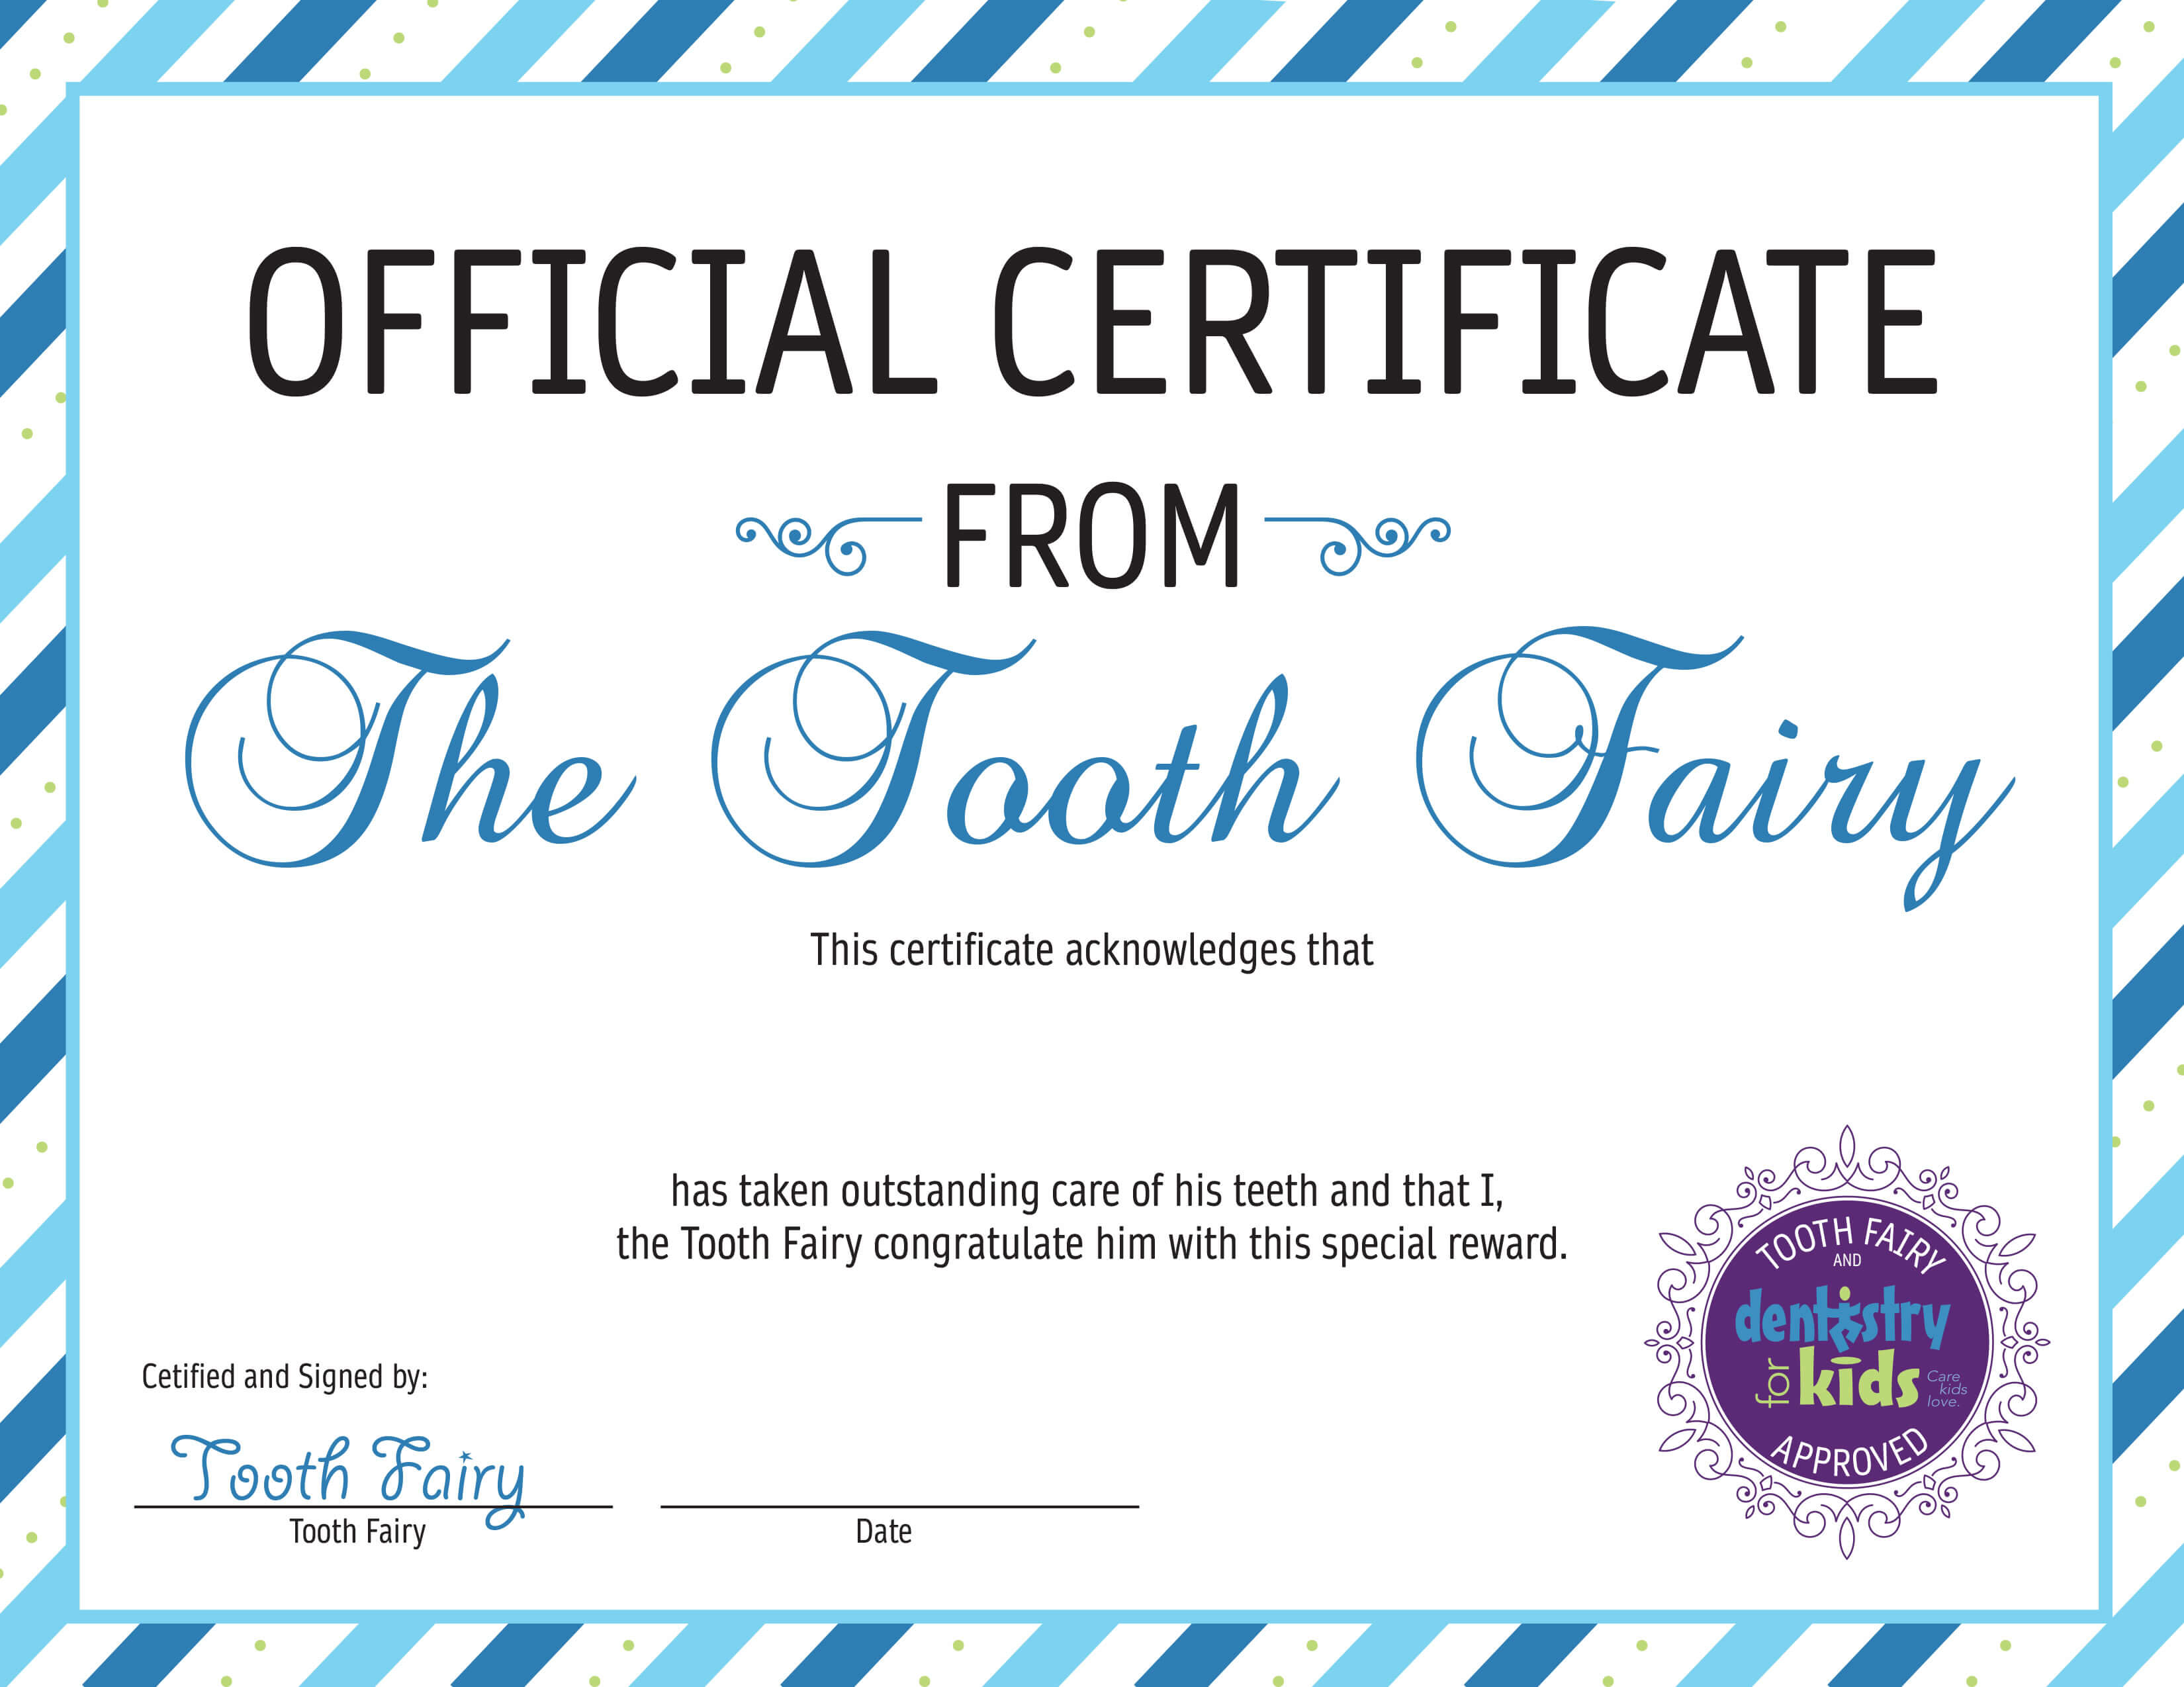 image regarding Tooth Fairy Certificates Printable referred to as Teeth Fairy Dentistry For Little ones Reno Reno, NV